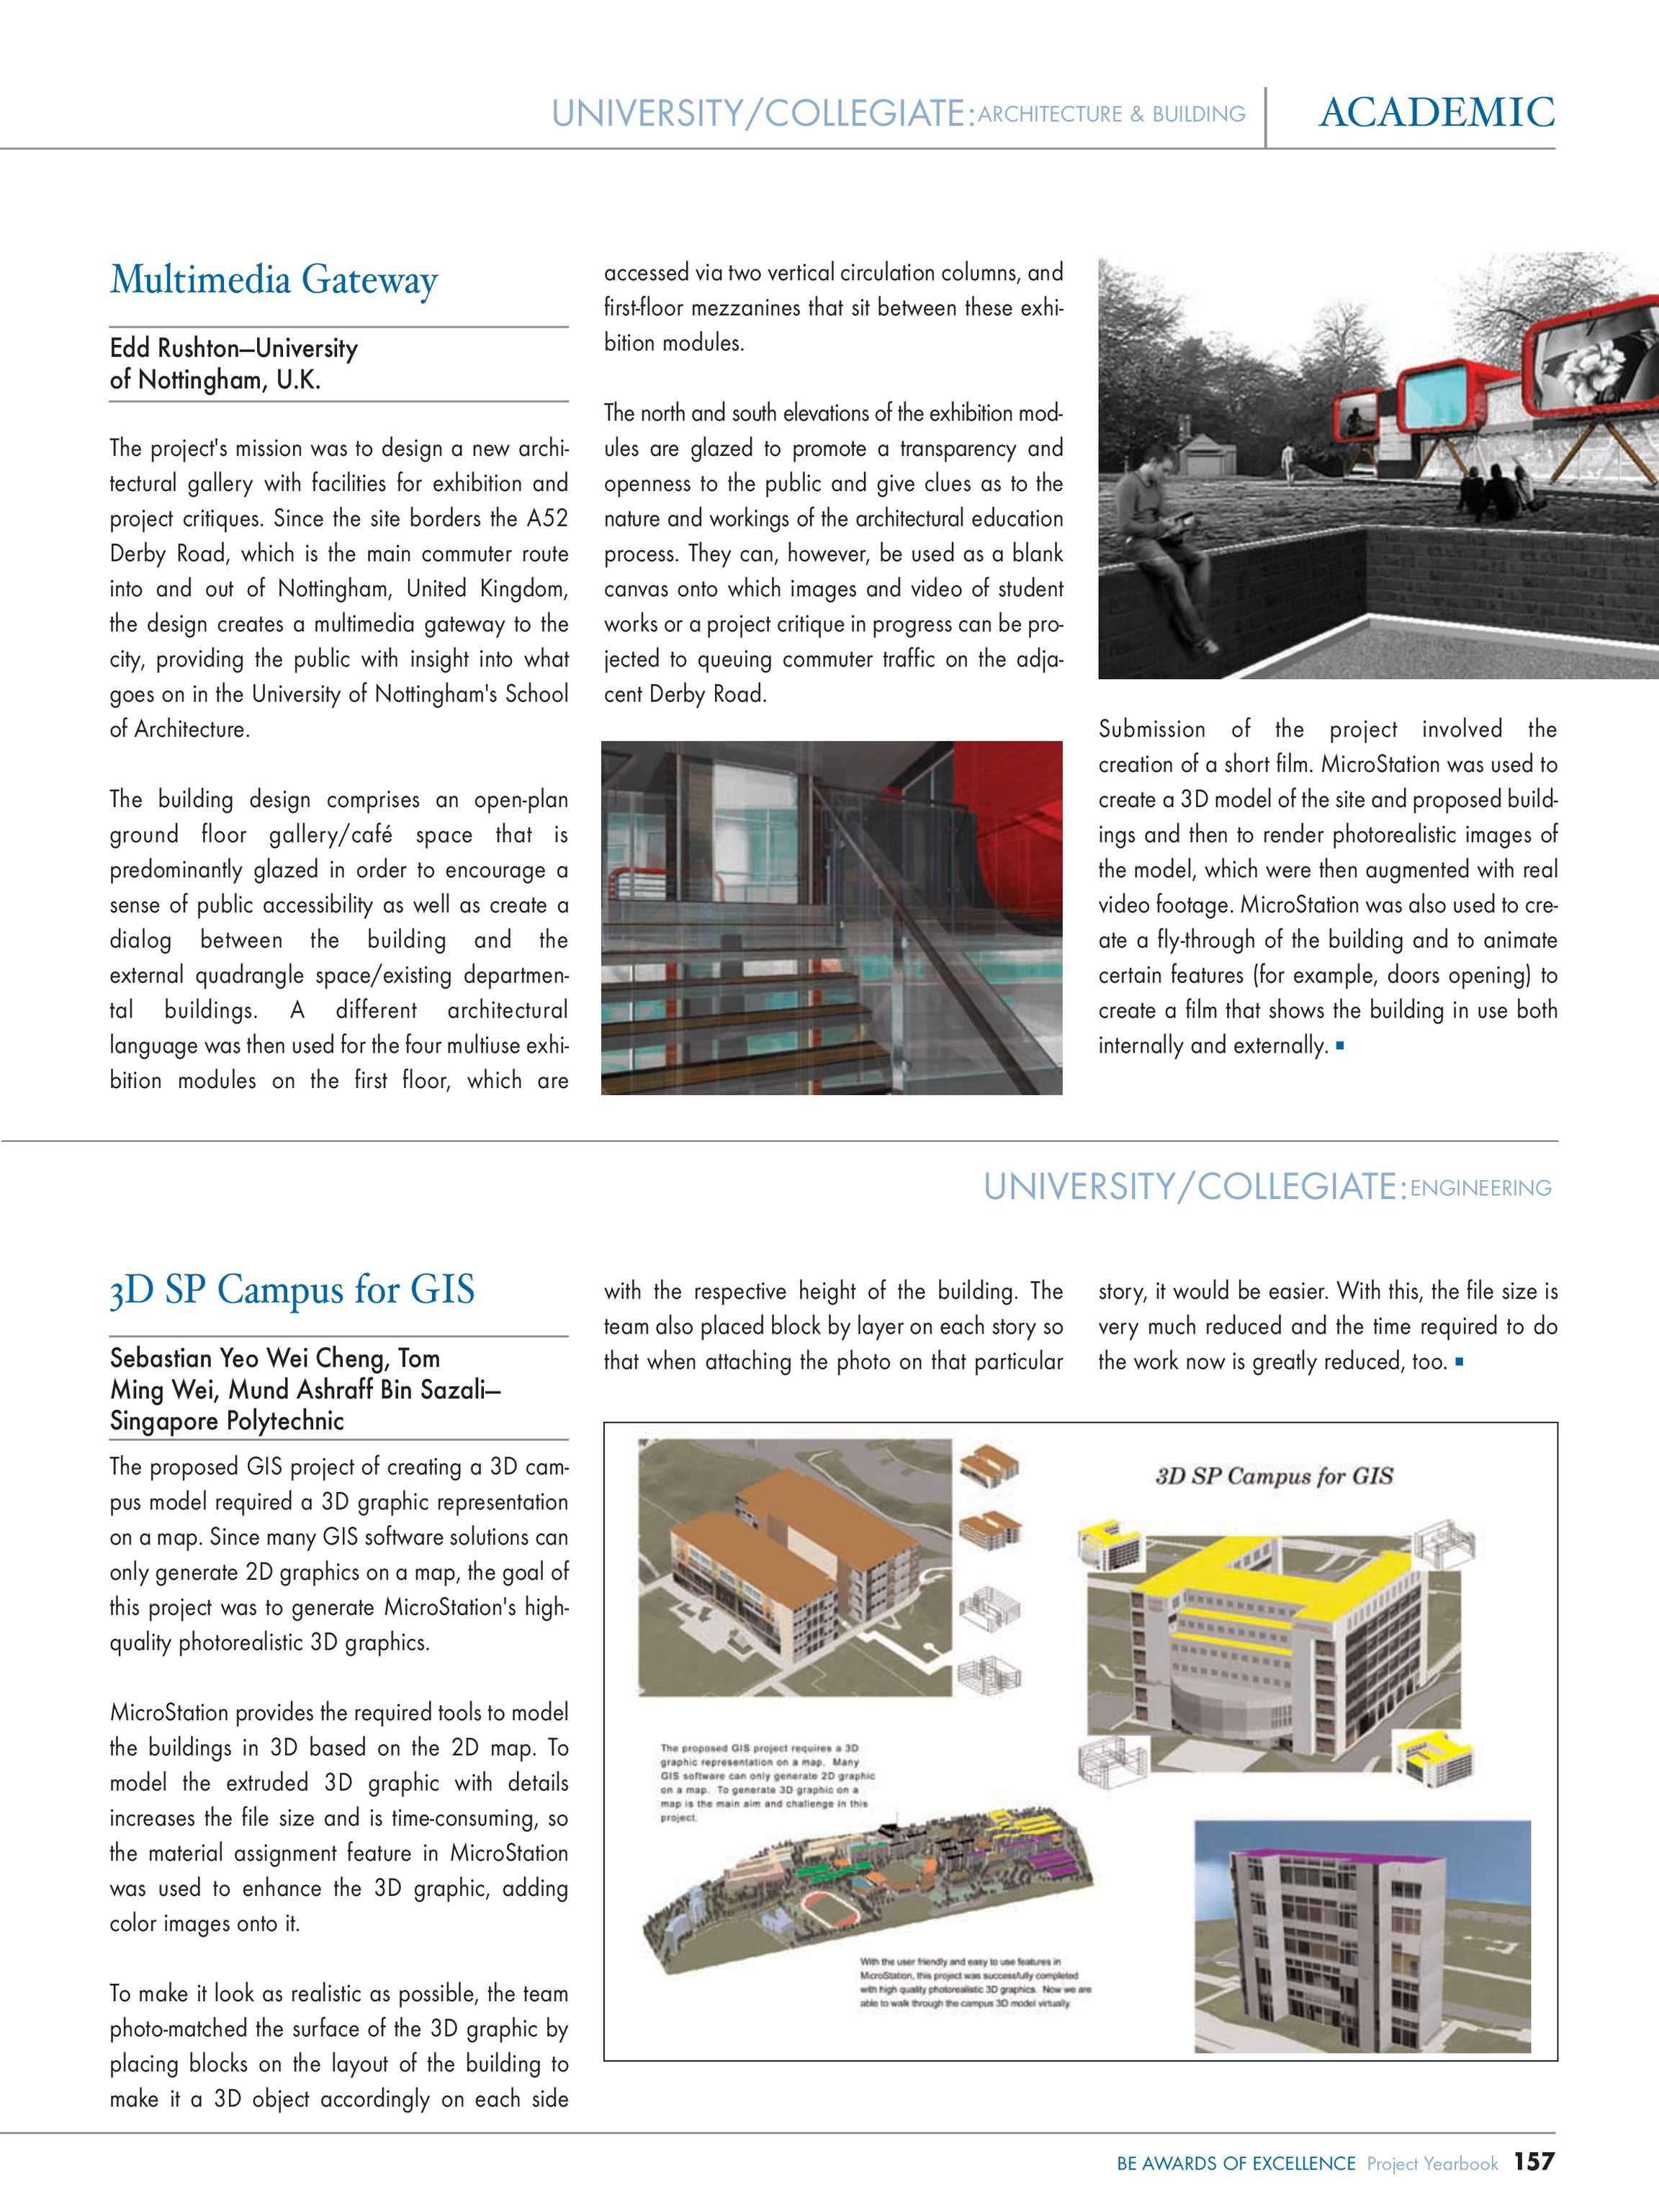 Year In Infrastructure 2006 - page 157